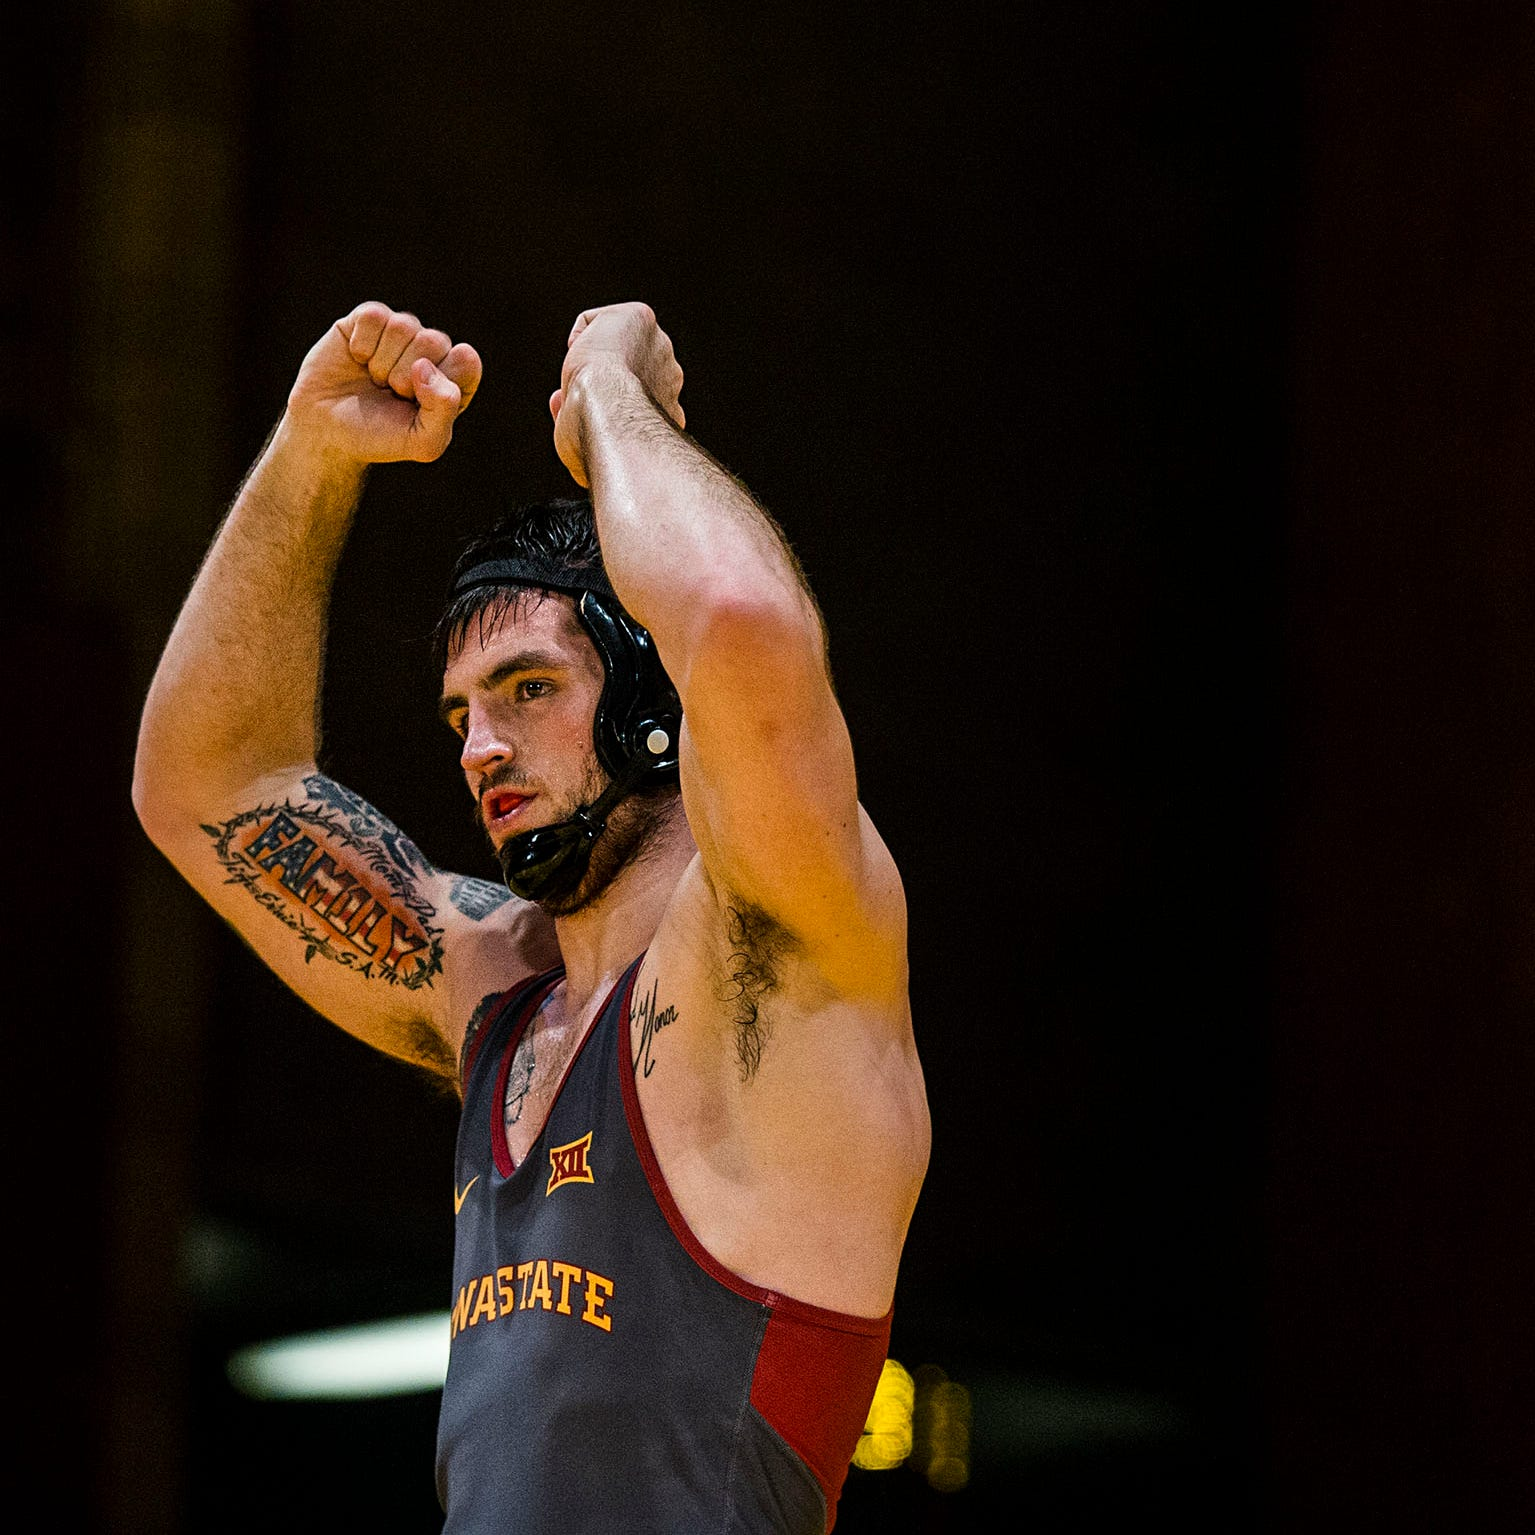 With dad's ALS battle in mind, Willie Miklus gives his all for Iowa State wrestling team